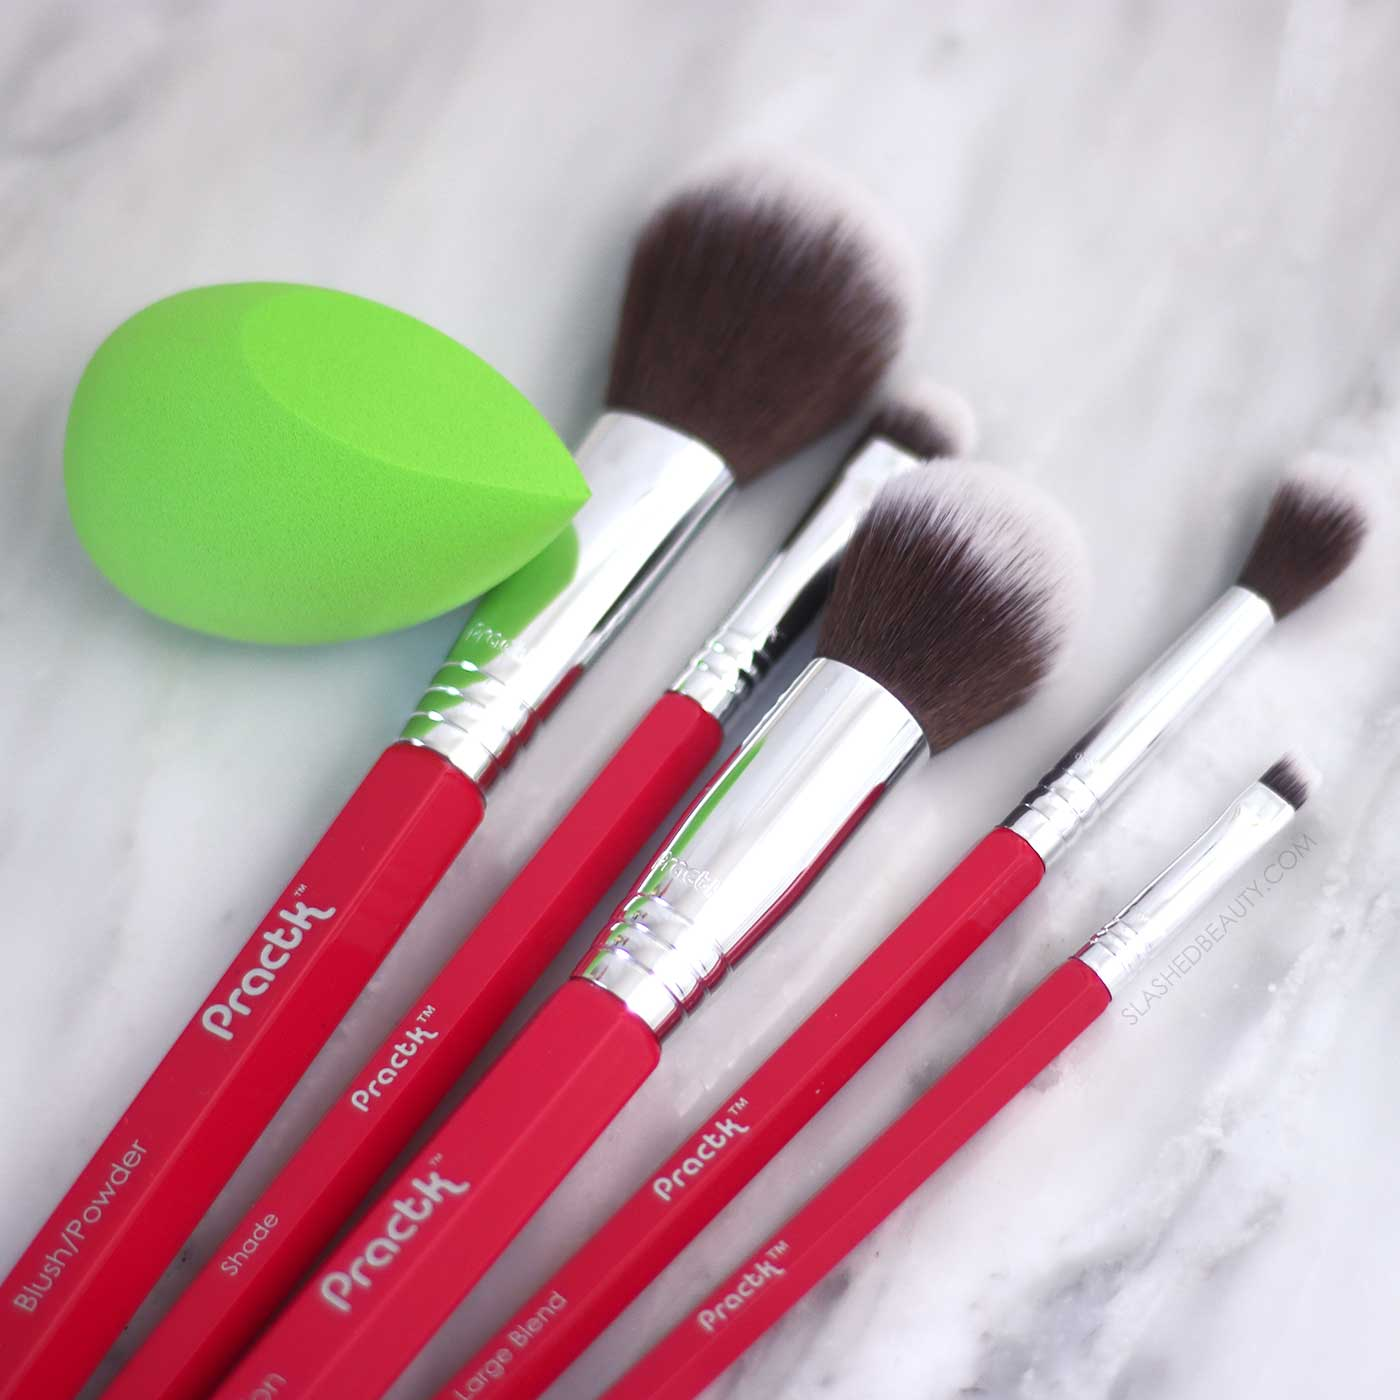 Practk Makeup Brushes Review | The 4 Best Brands for Budget Makeup Brushes | Slashed Beauty